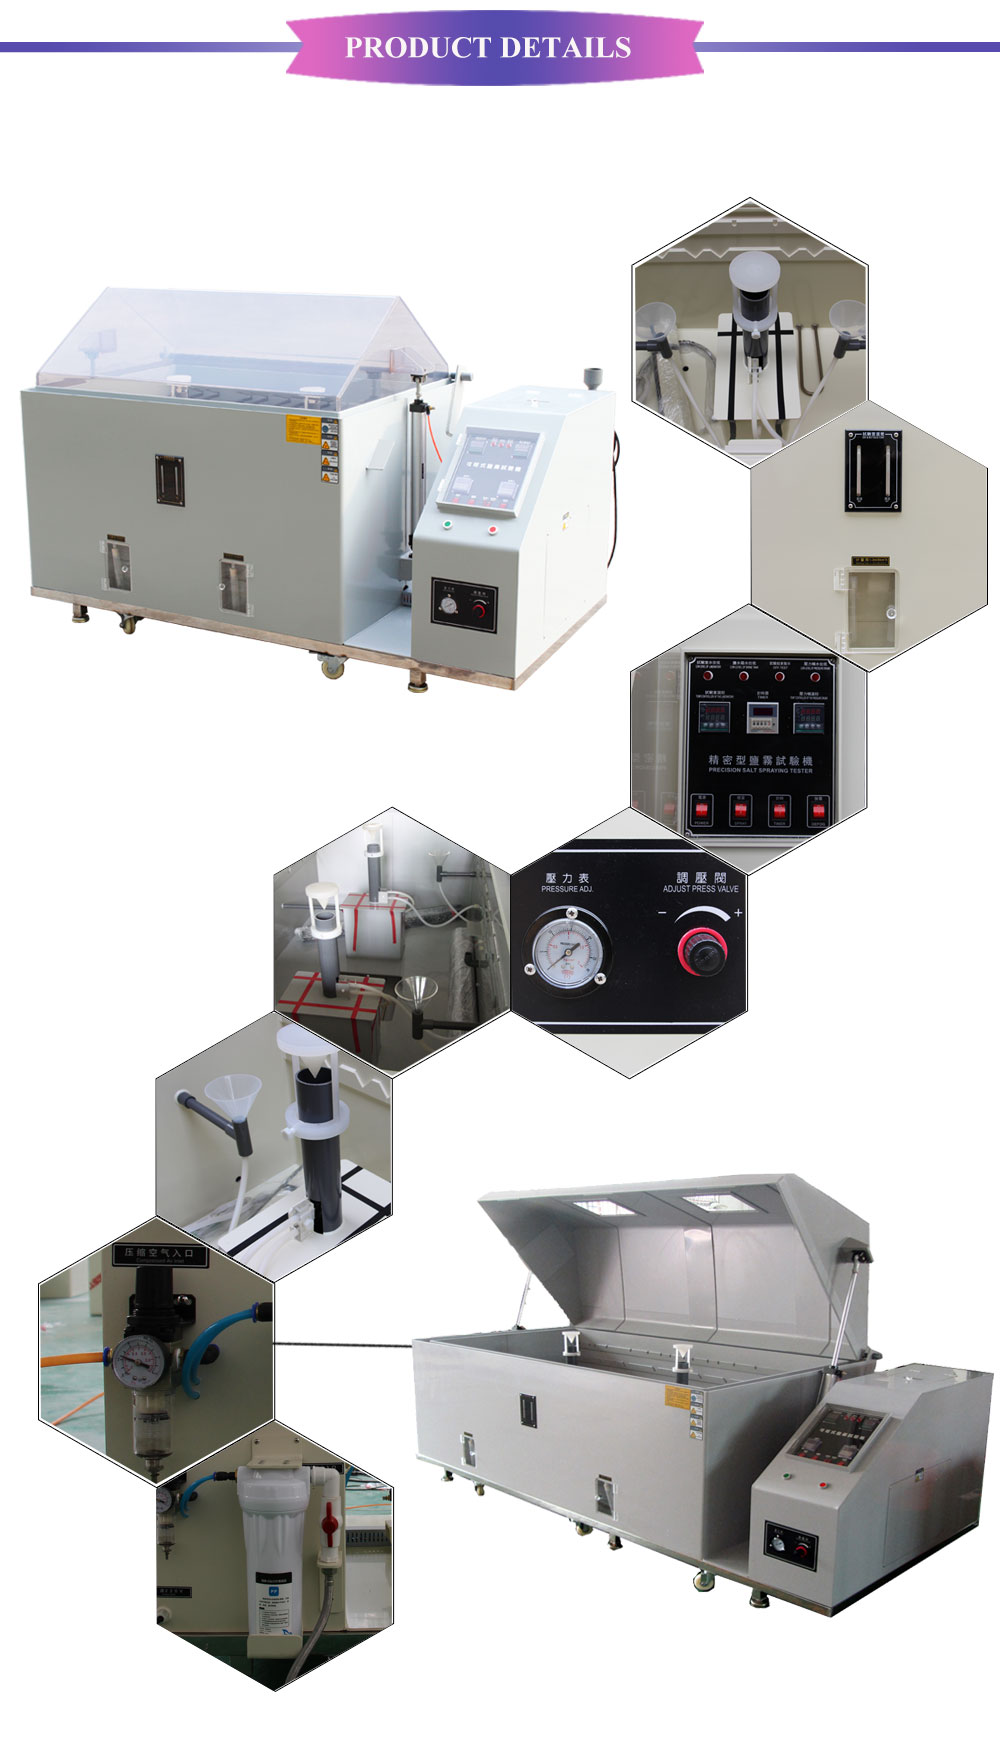 Salt Spray Test Machine Price,Used Salt Spray Chamber Price,Salt Spray Test Chamber